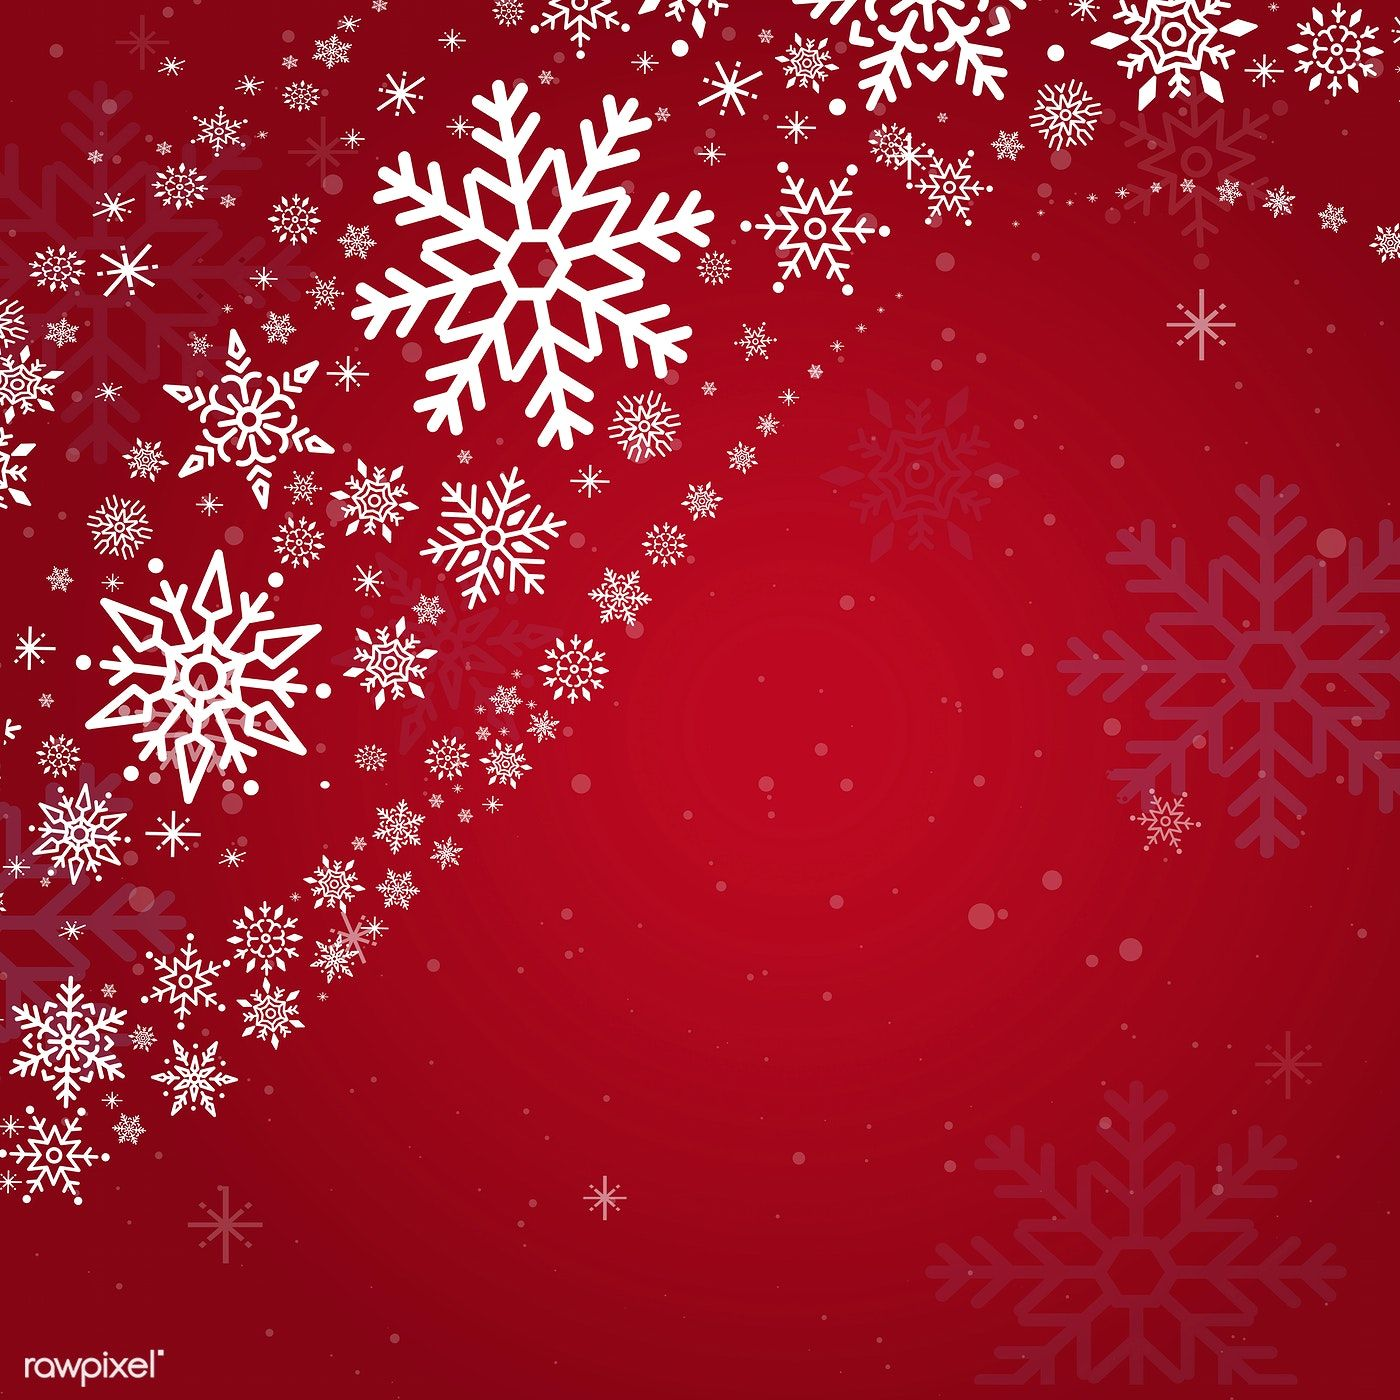 Red Christmas Winter Holiday Background With Snowflake Vector Free Image By Rawpixel Com Holiday Background Christmas Theme Background Red Christmas